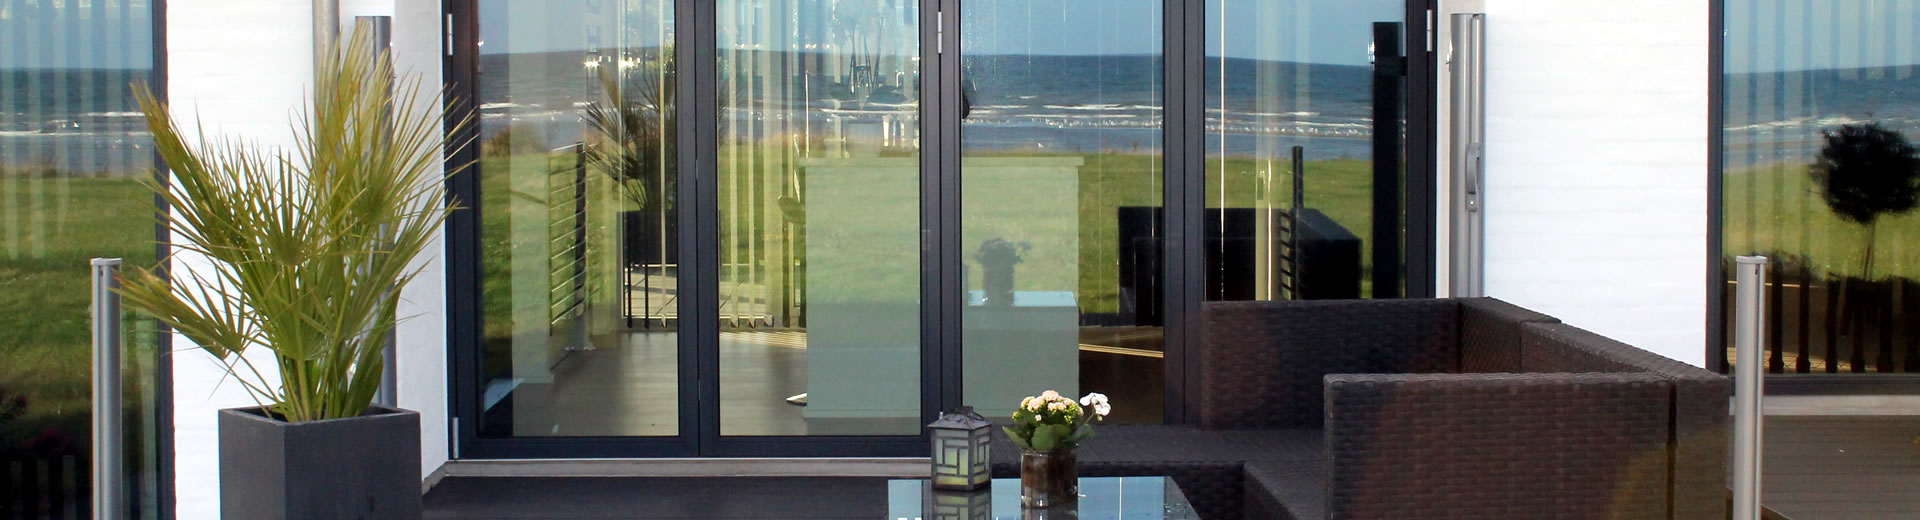 Aluminium double glazing doors